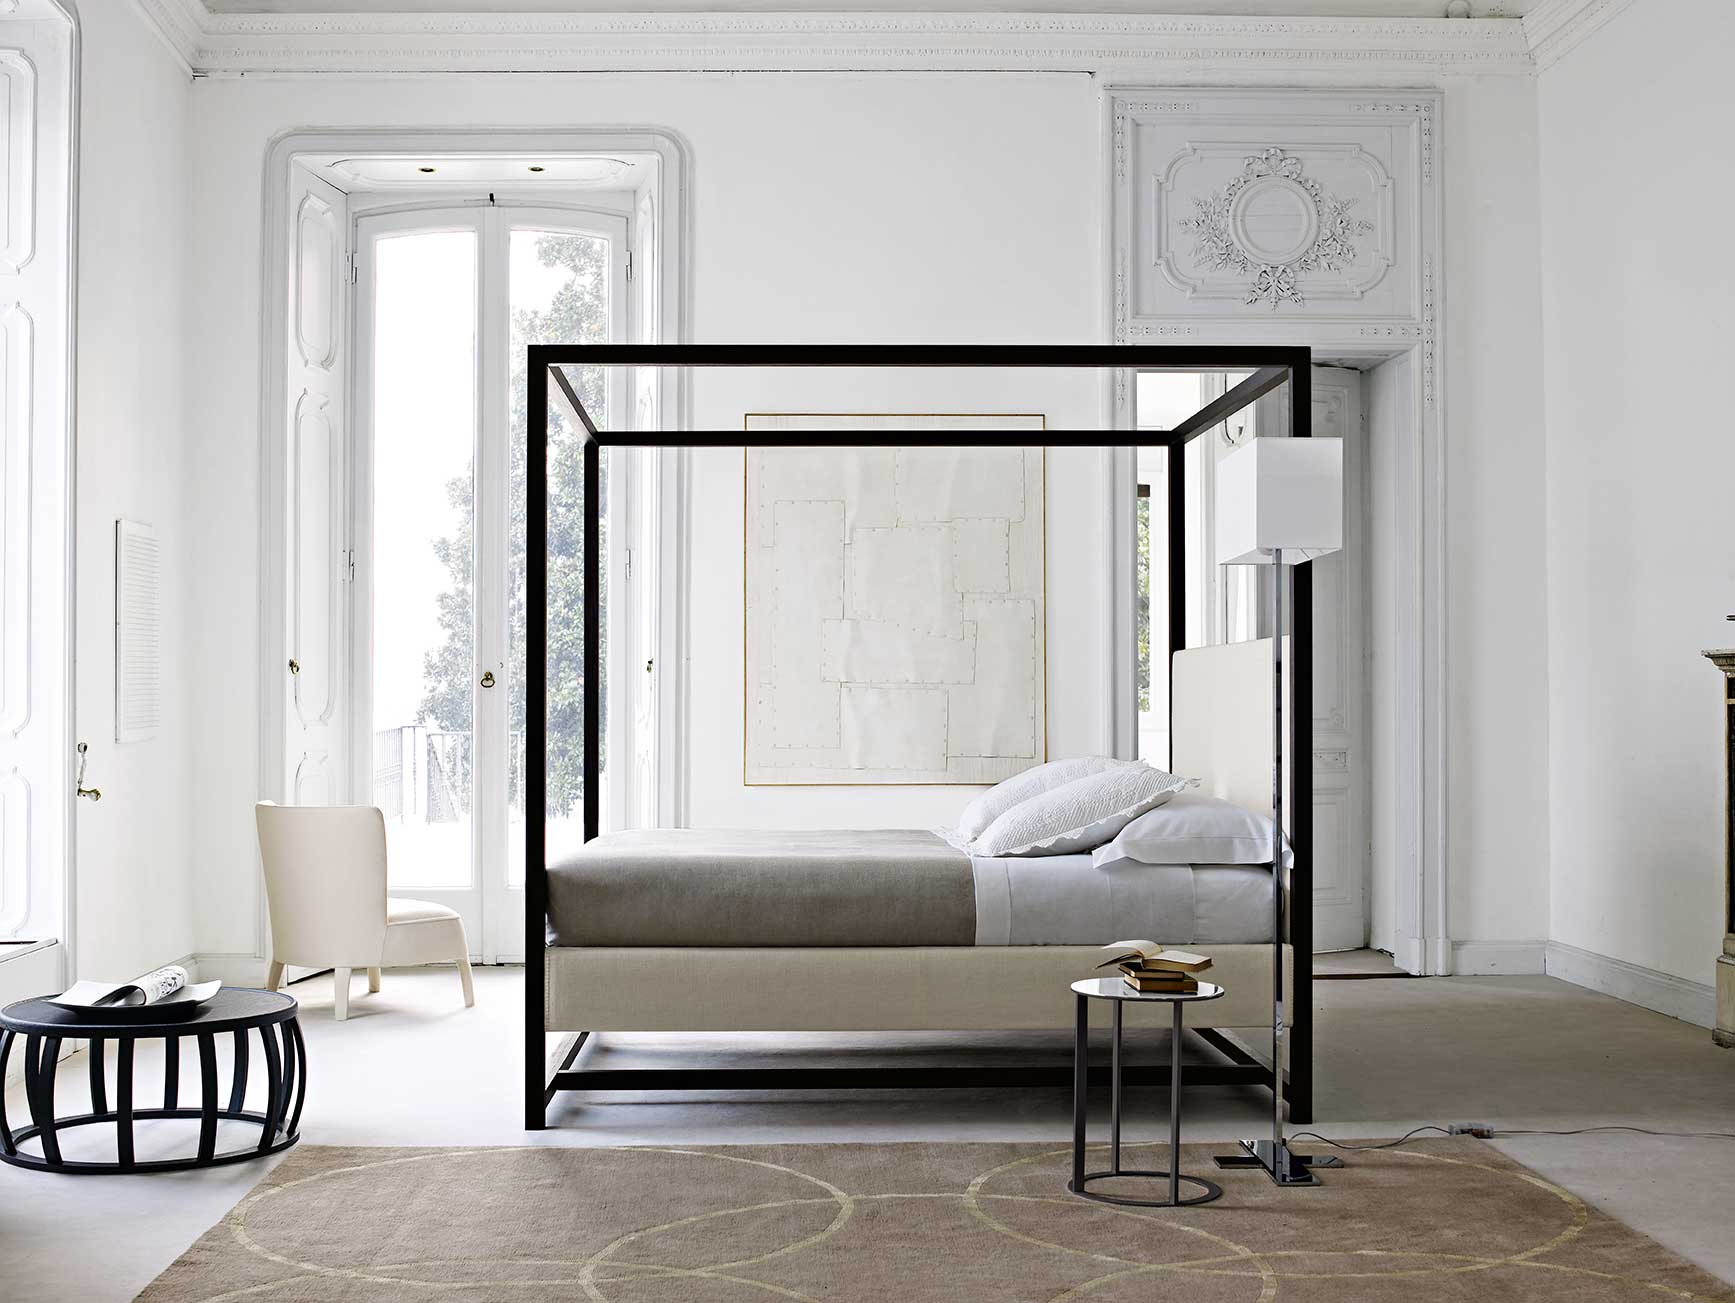 David recommends a neutral colour palette in your bedroom like this interior featuring the   Maxalto Alcova bed  .